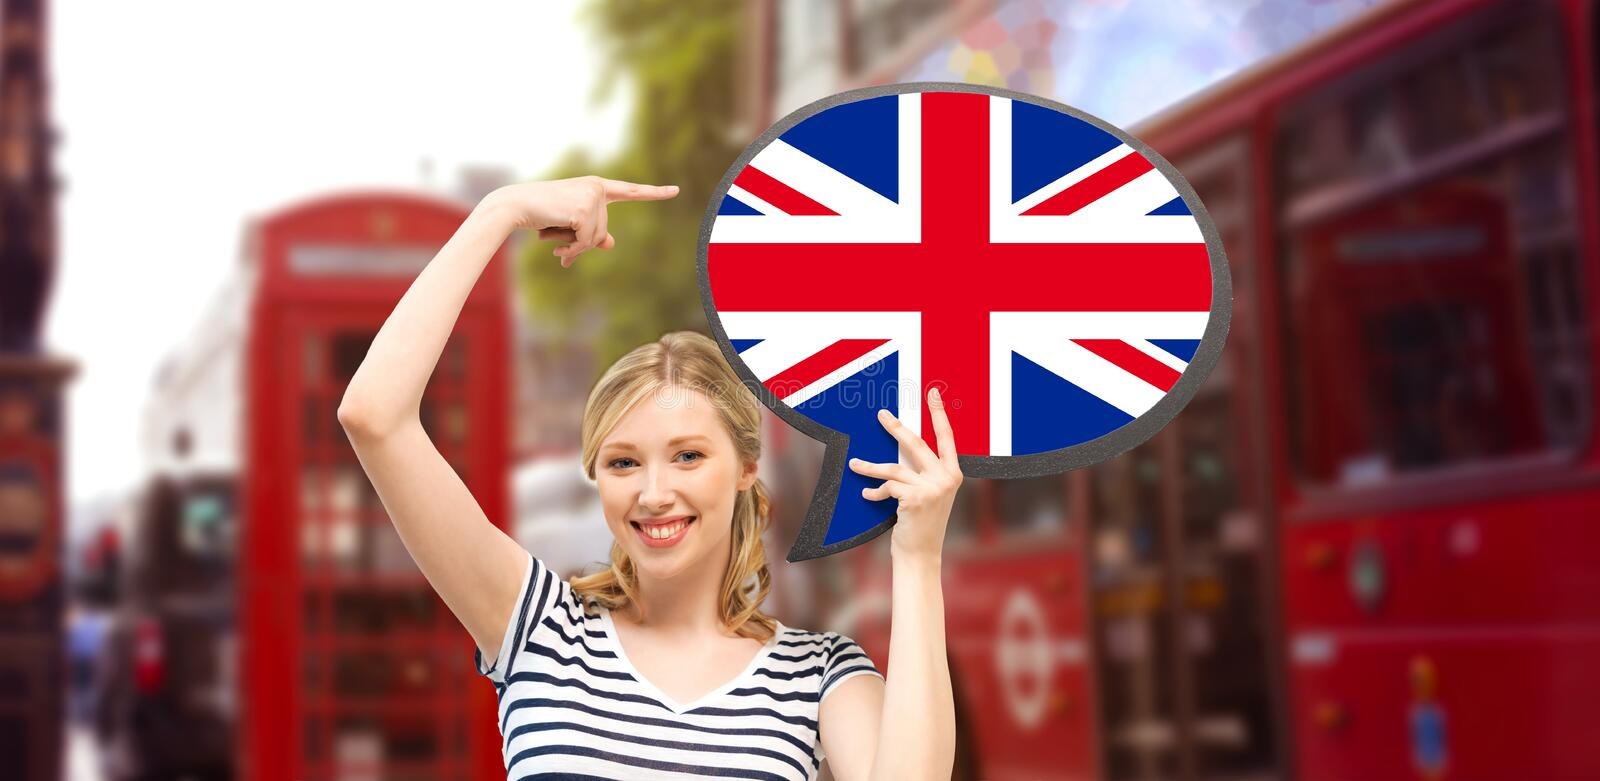 Woman with text bubble of british flag in london royalty free stock images